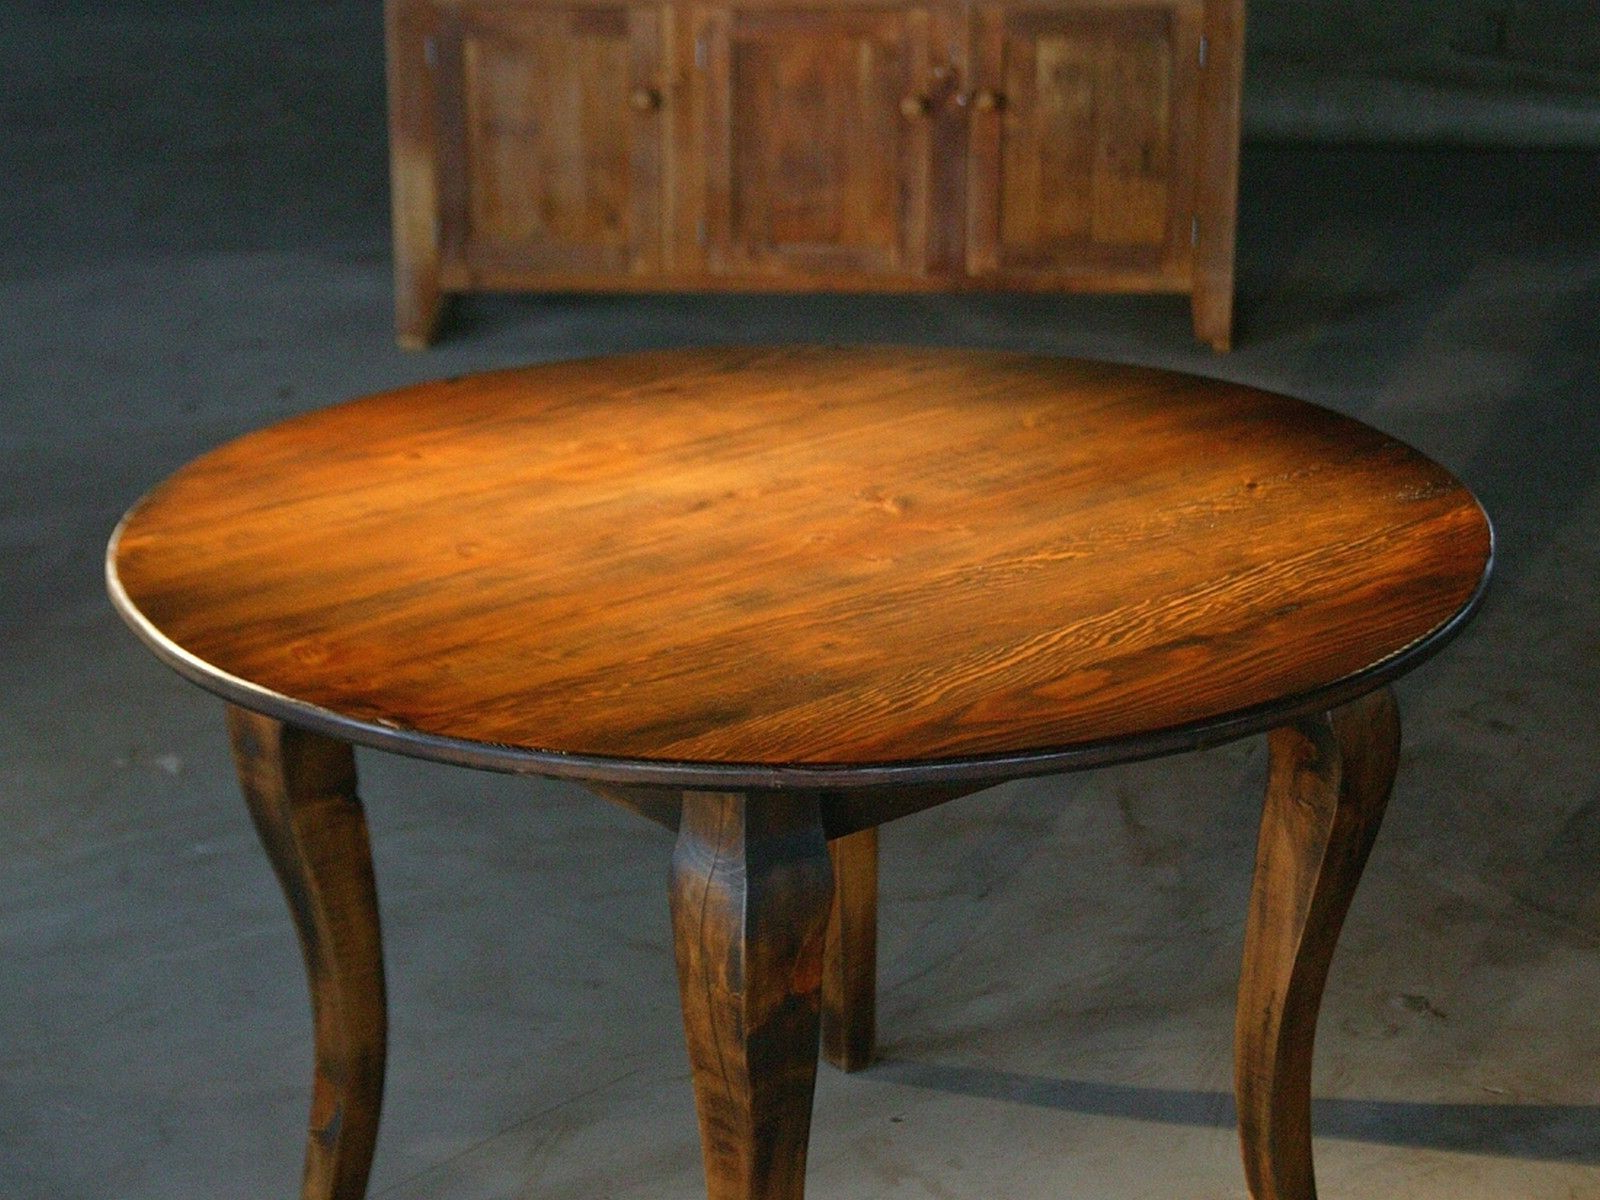 Small Round Dining Tables With Reclaimed Wood Inside Recent Hand Crafted Round End Table From Reclaimed Old Pine (View 7 of 25)